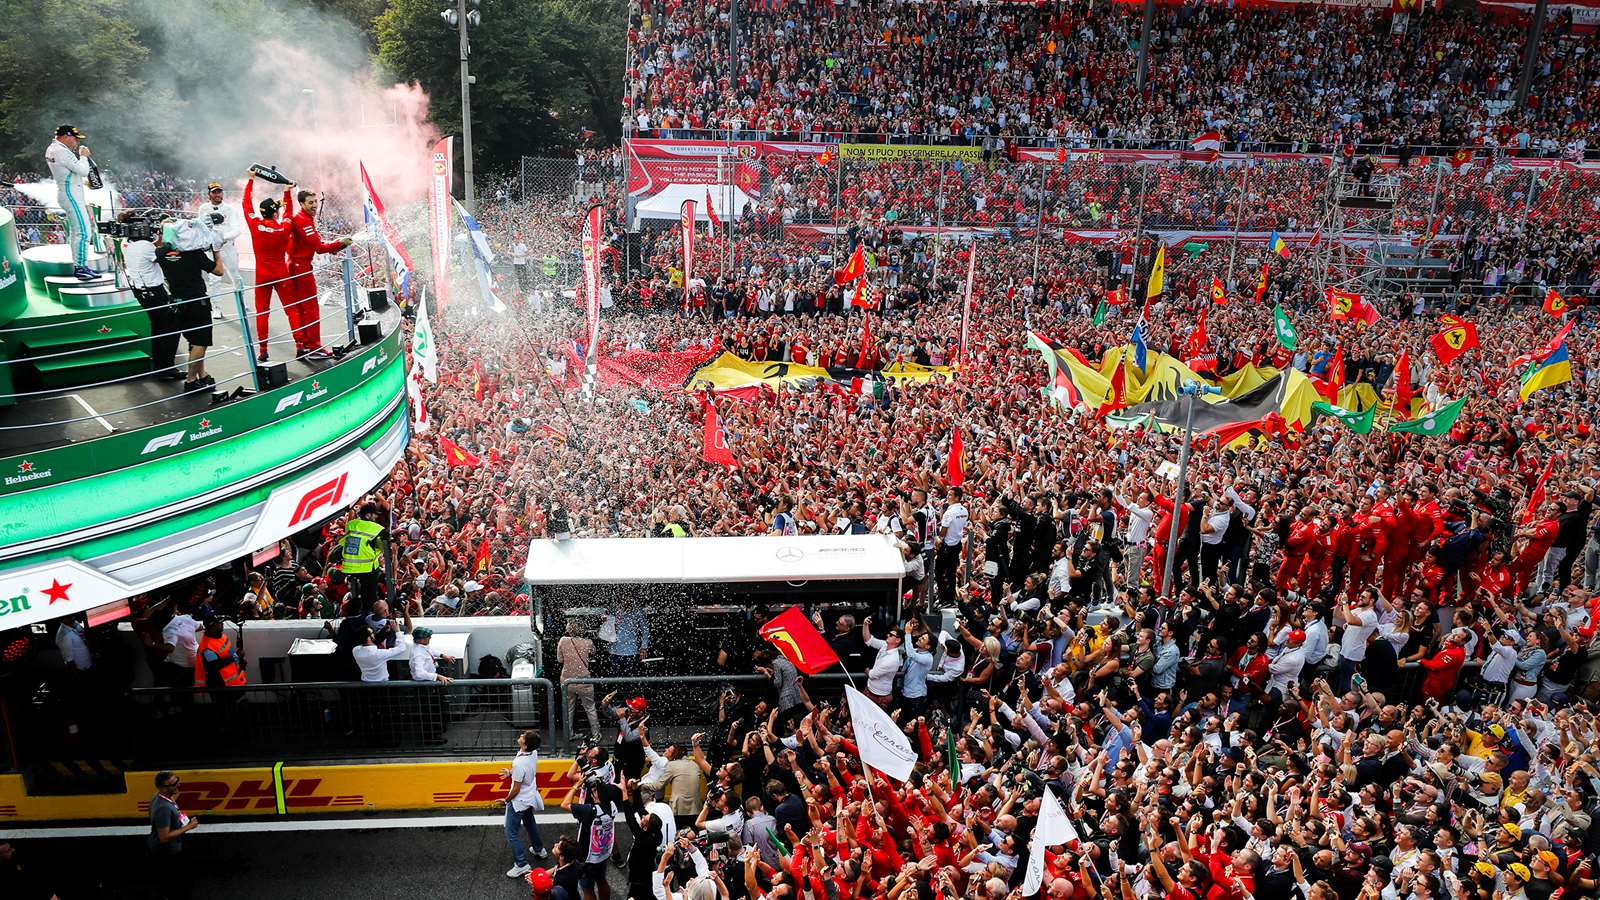 Charles Leclerc celebrates victory at the 2019 Italian Grand Prix